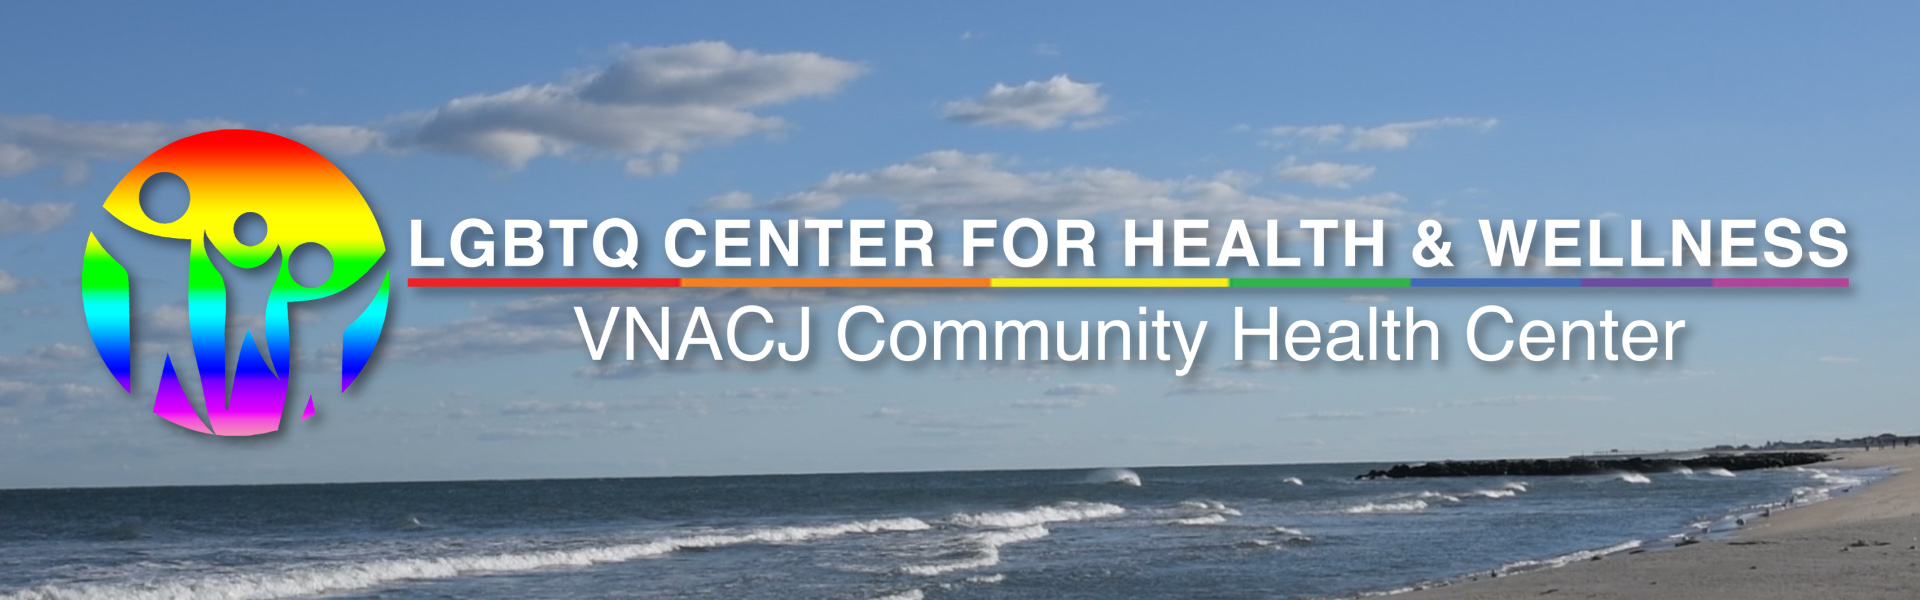 HeaderLGBTQhealthCenter